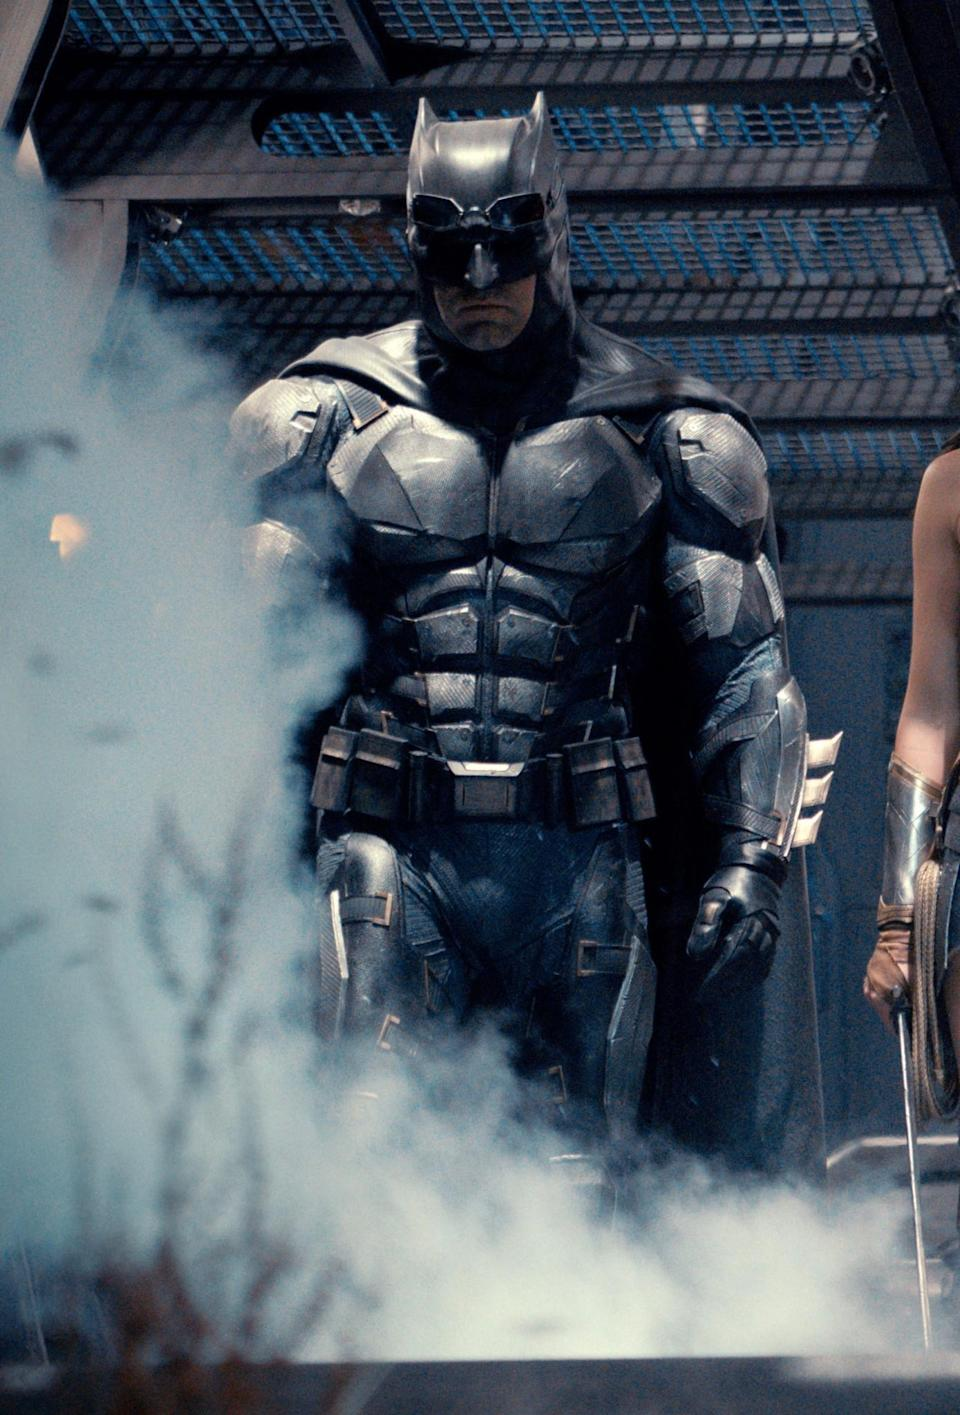 A closer look at Batman in 'Justice League' (Warner Bros.)